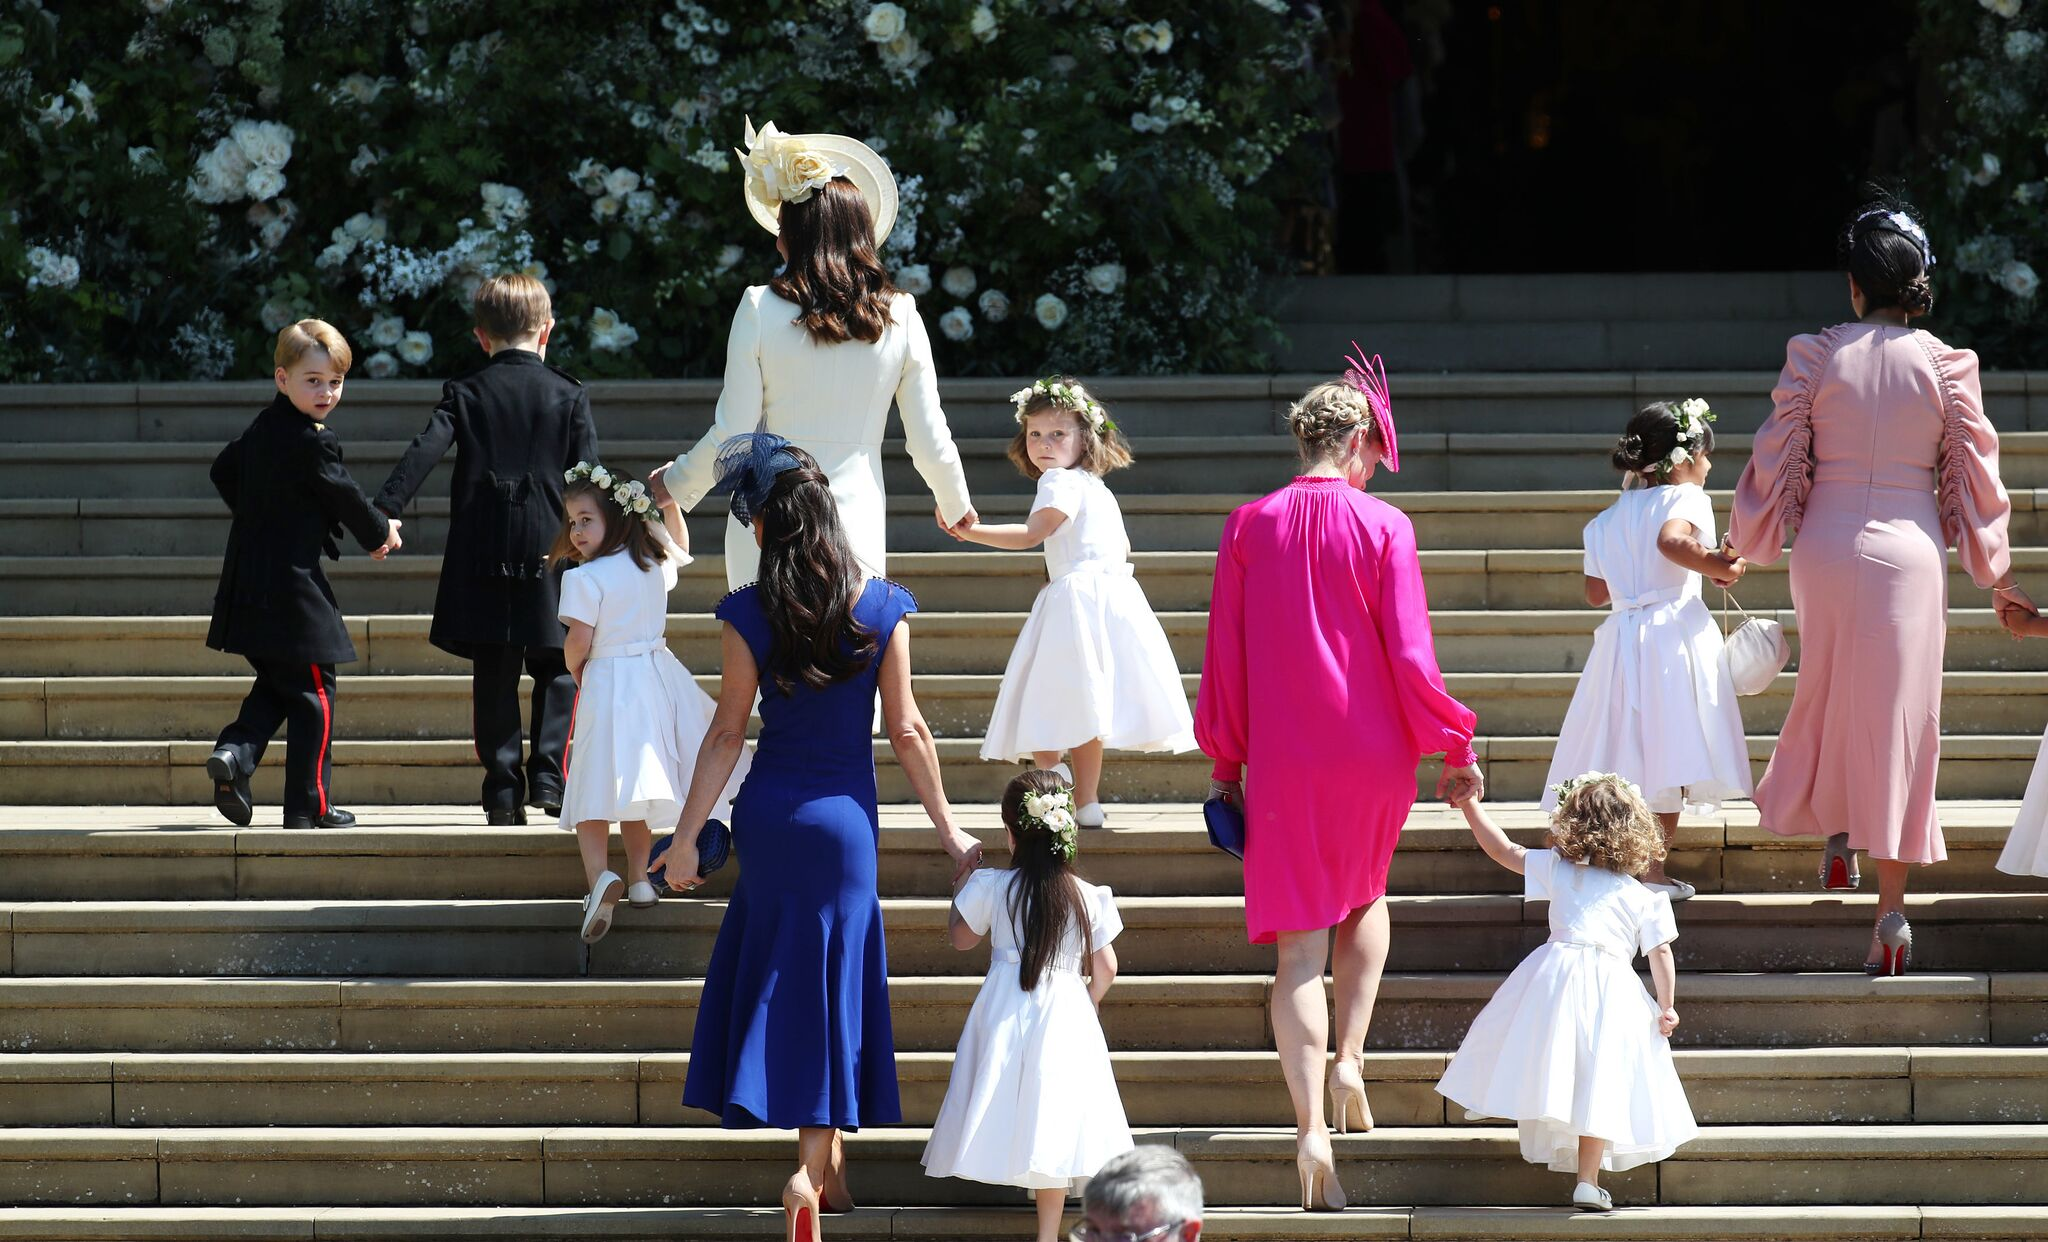 The children of Prince William and Kate Middleton arriving at Prince Harry and Meghan Markle's wedding | Getty Images